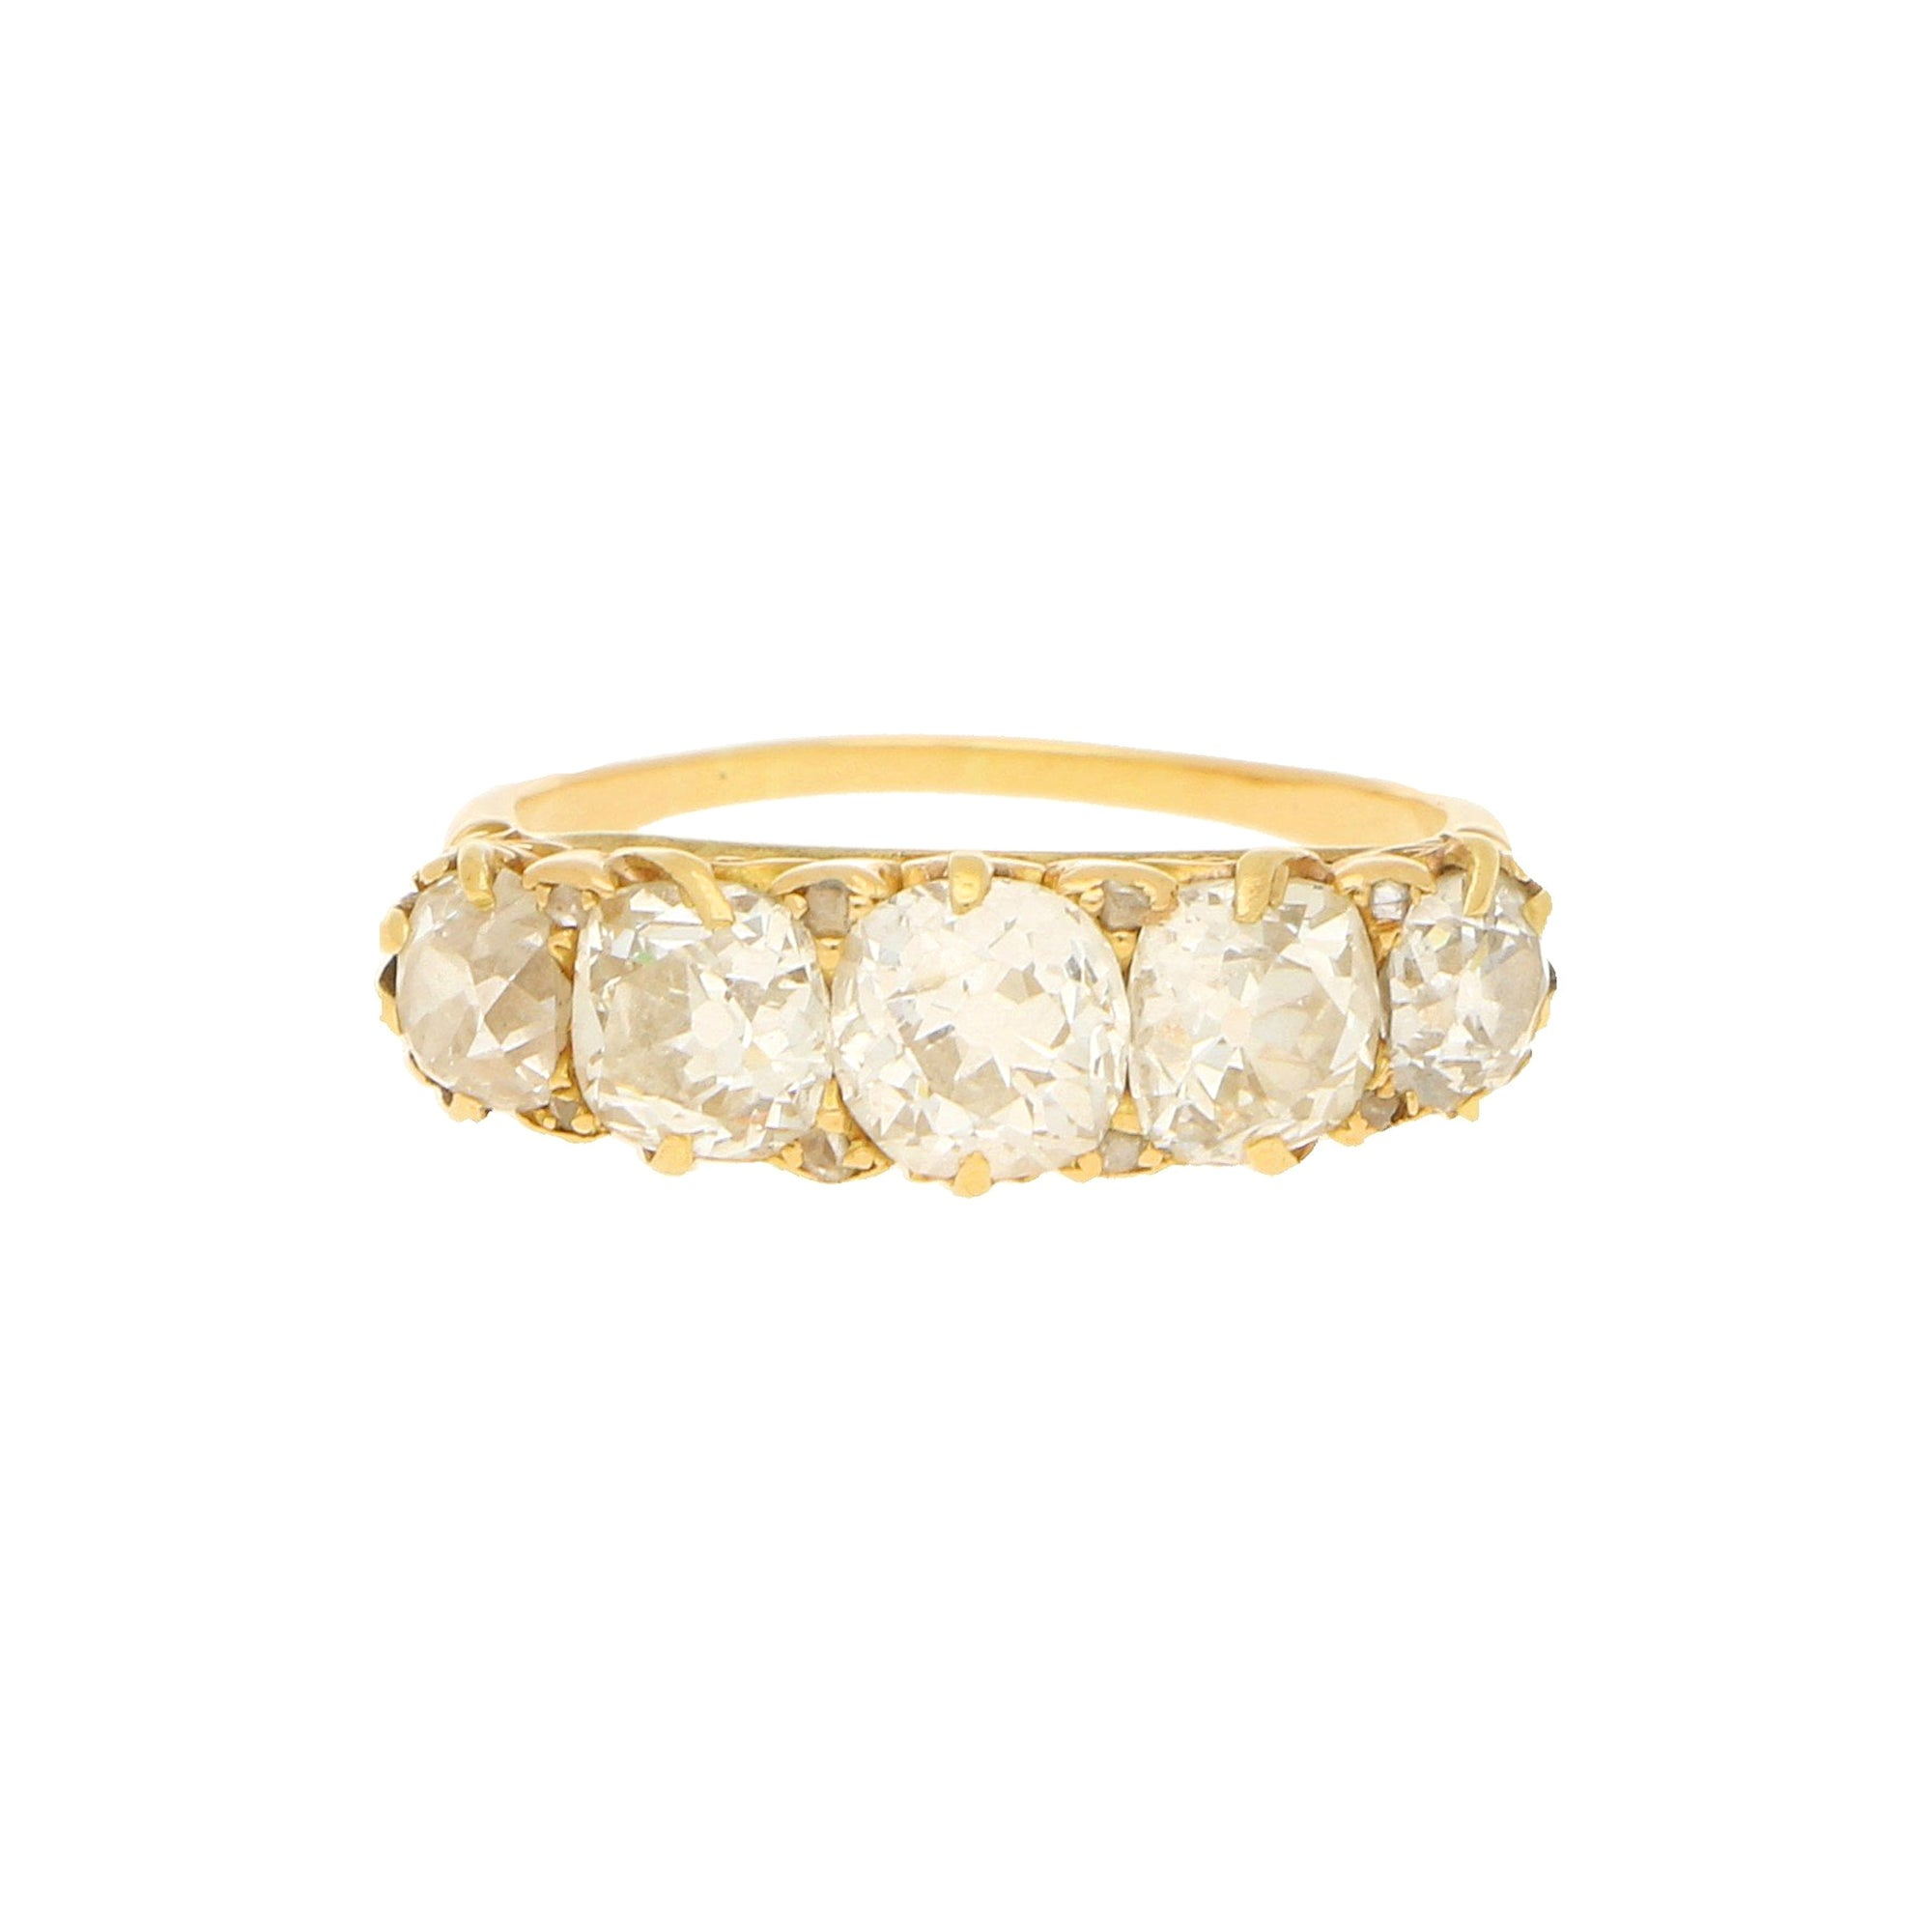 Victorian Old Cut Diamond Five-Stone Engagement Ring in 18k Yellow Gold